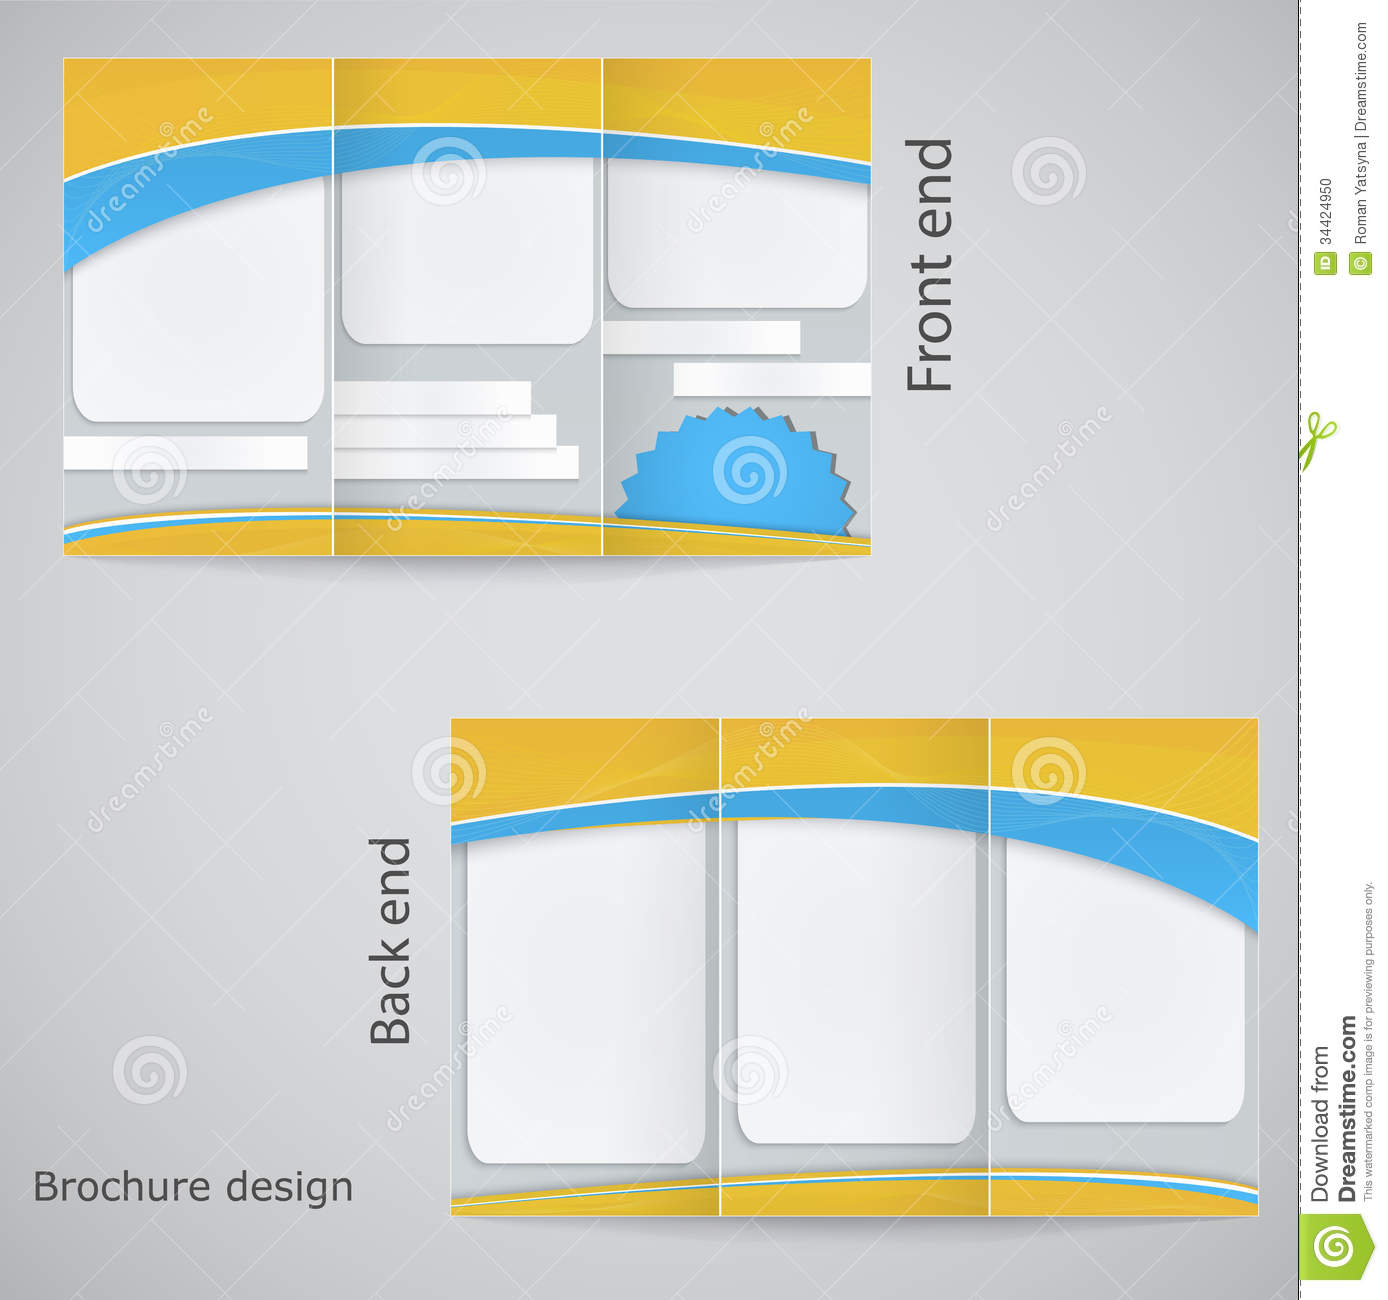 blank tri fold brochure template free download - tri fold brochure design stock vector image of branding